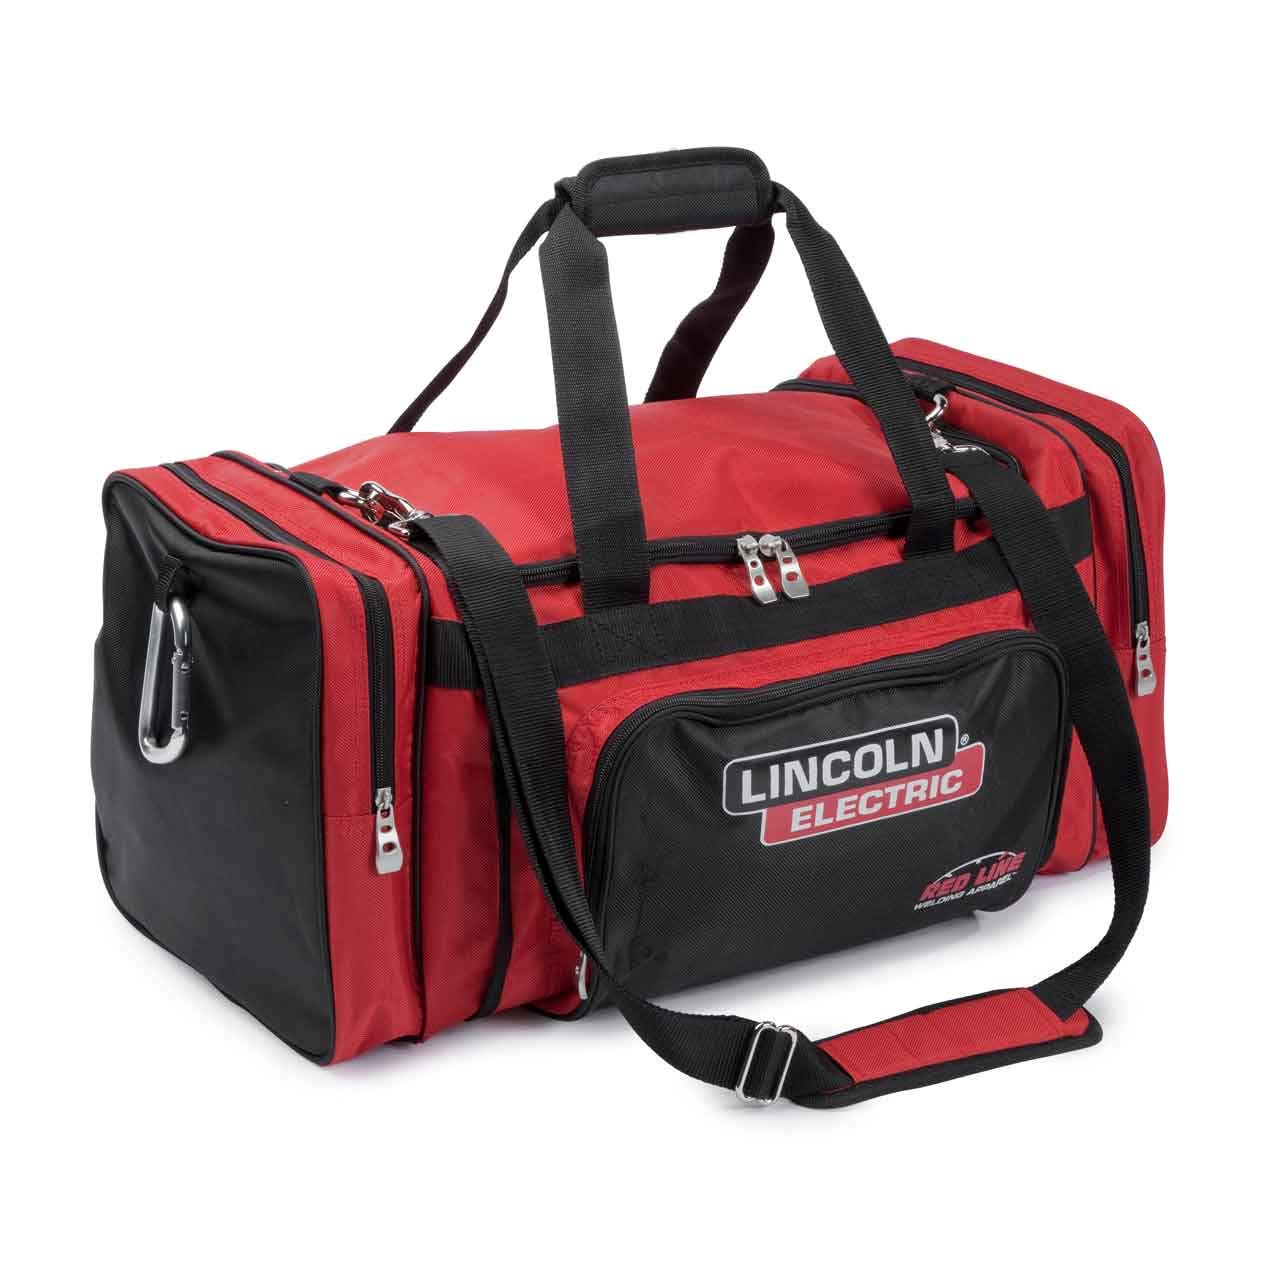 Lincoln Electric Industrial Duffle Bag | Military Grade Denier Fabric | 24' x 12' x 12' | 50+ LB Capacity | K3096-1